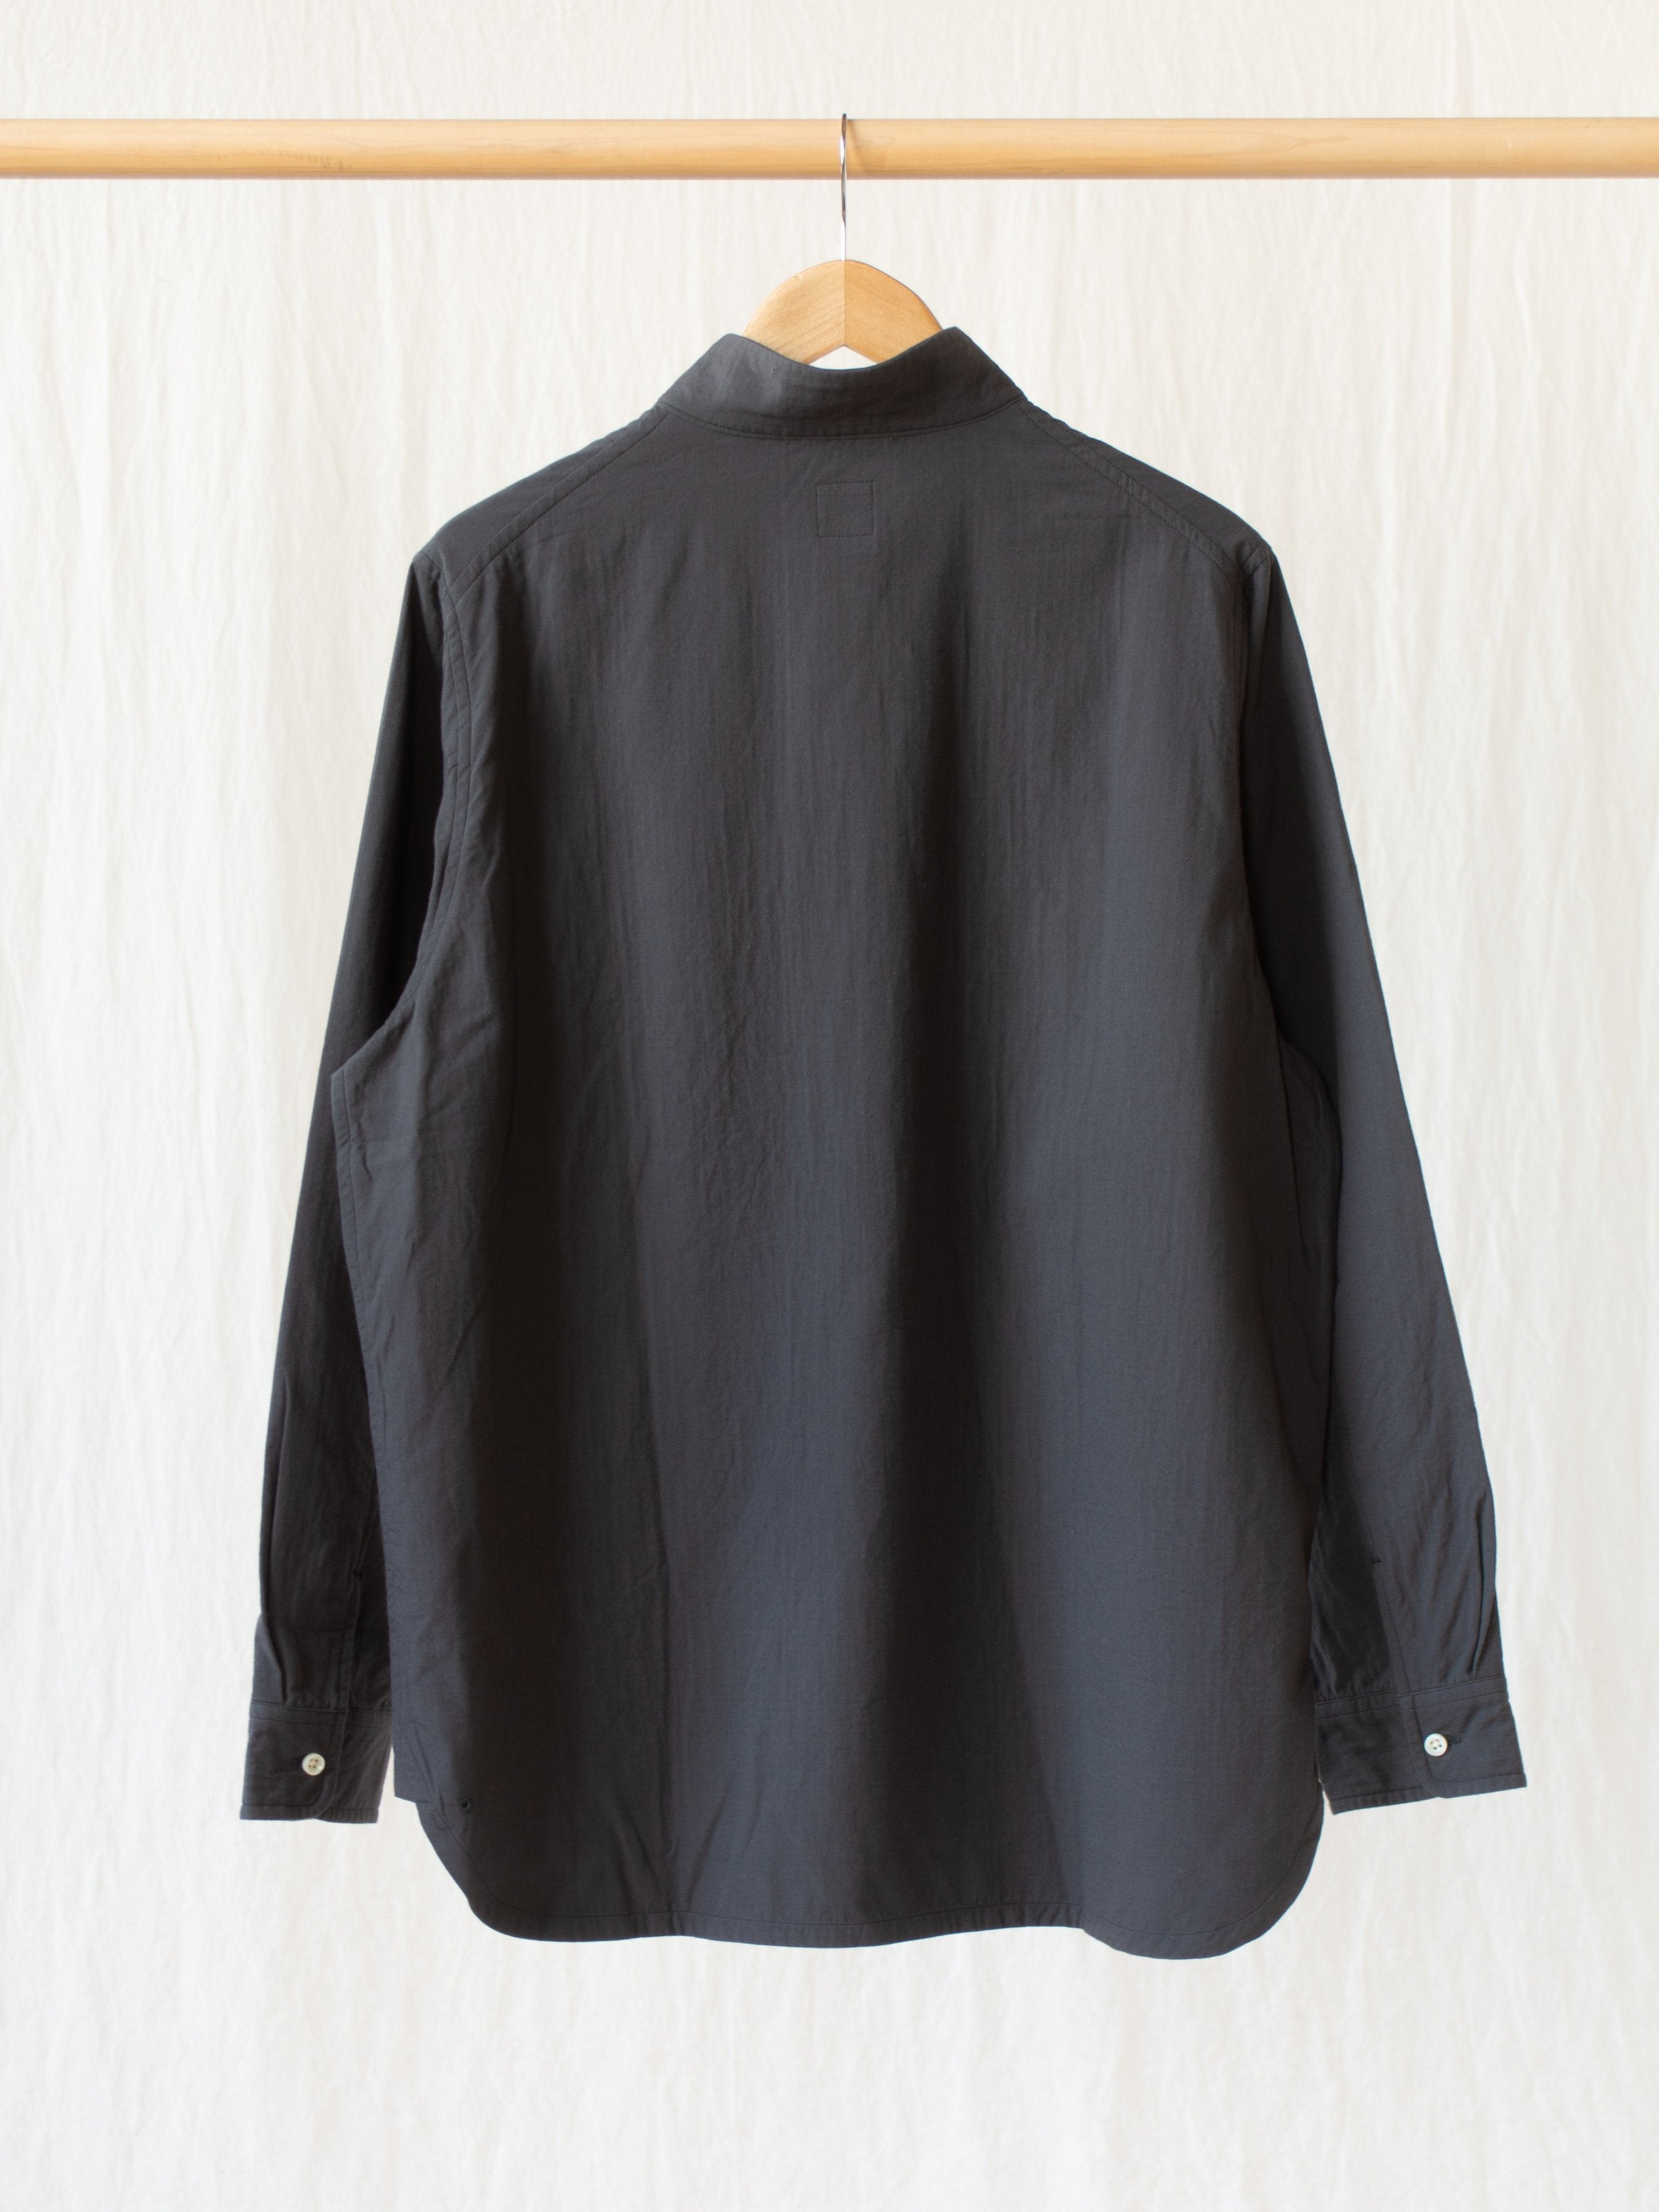 Namu Shop - Maillot Double Gauze High Neck Shirt Jacket - Charcoal